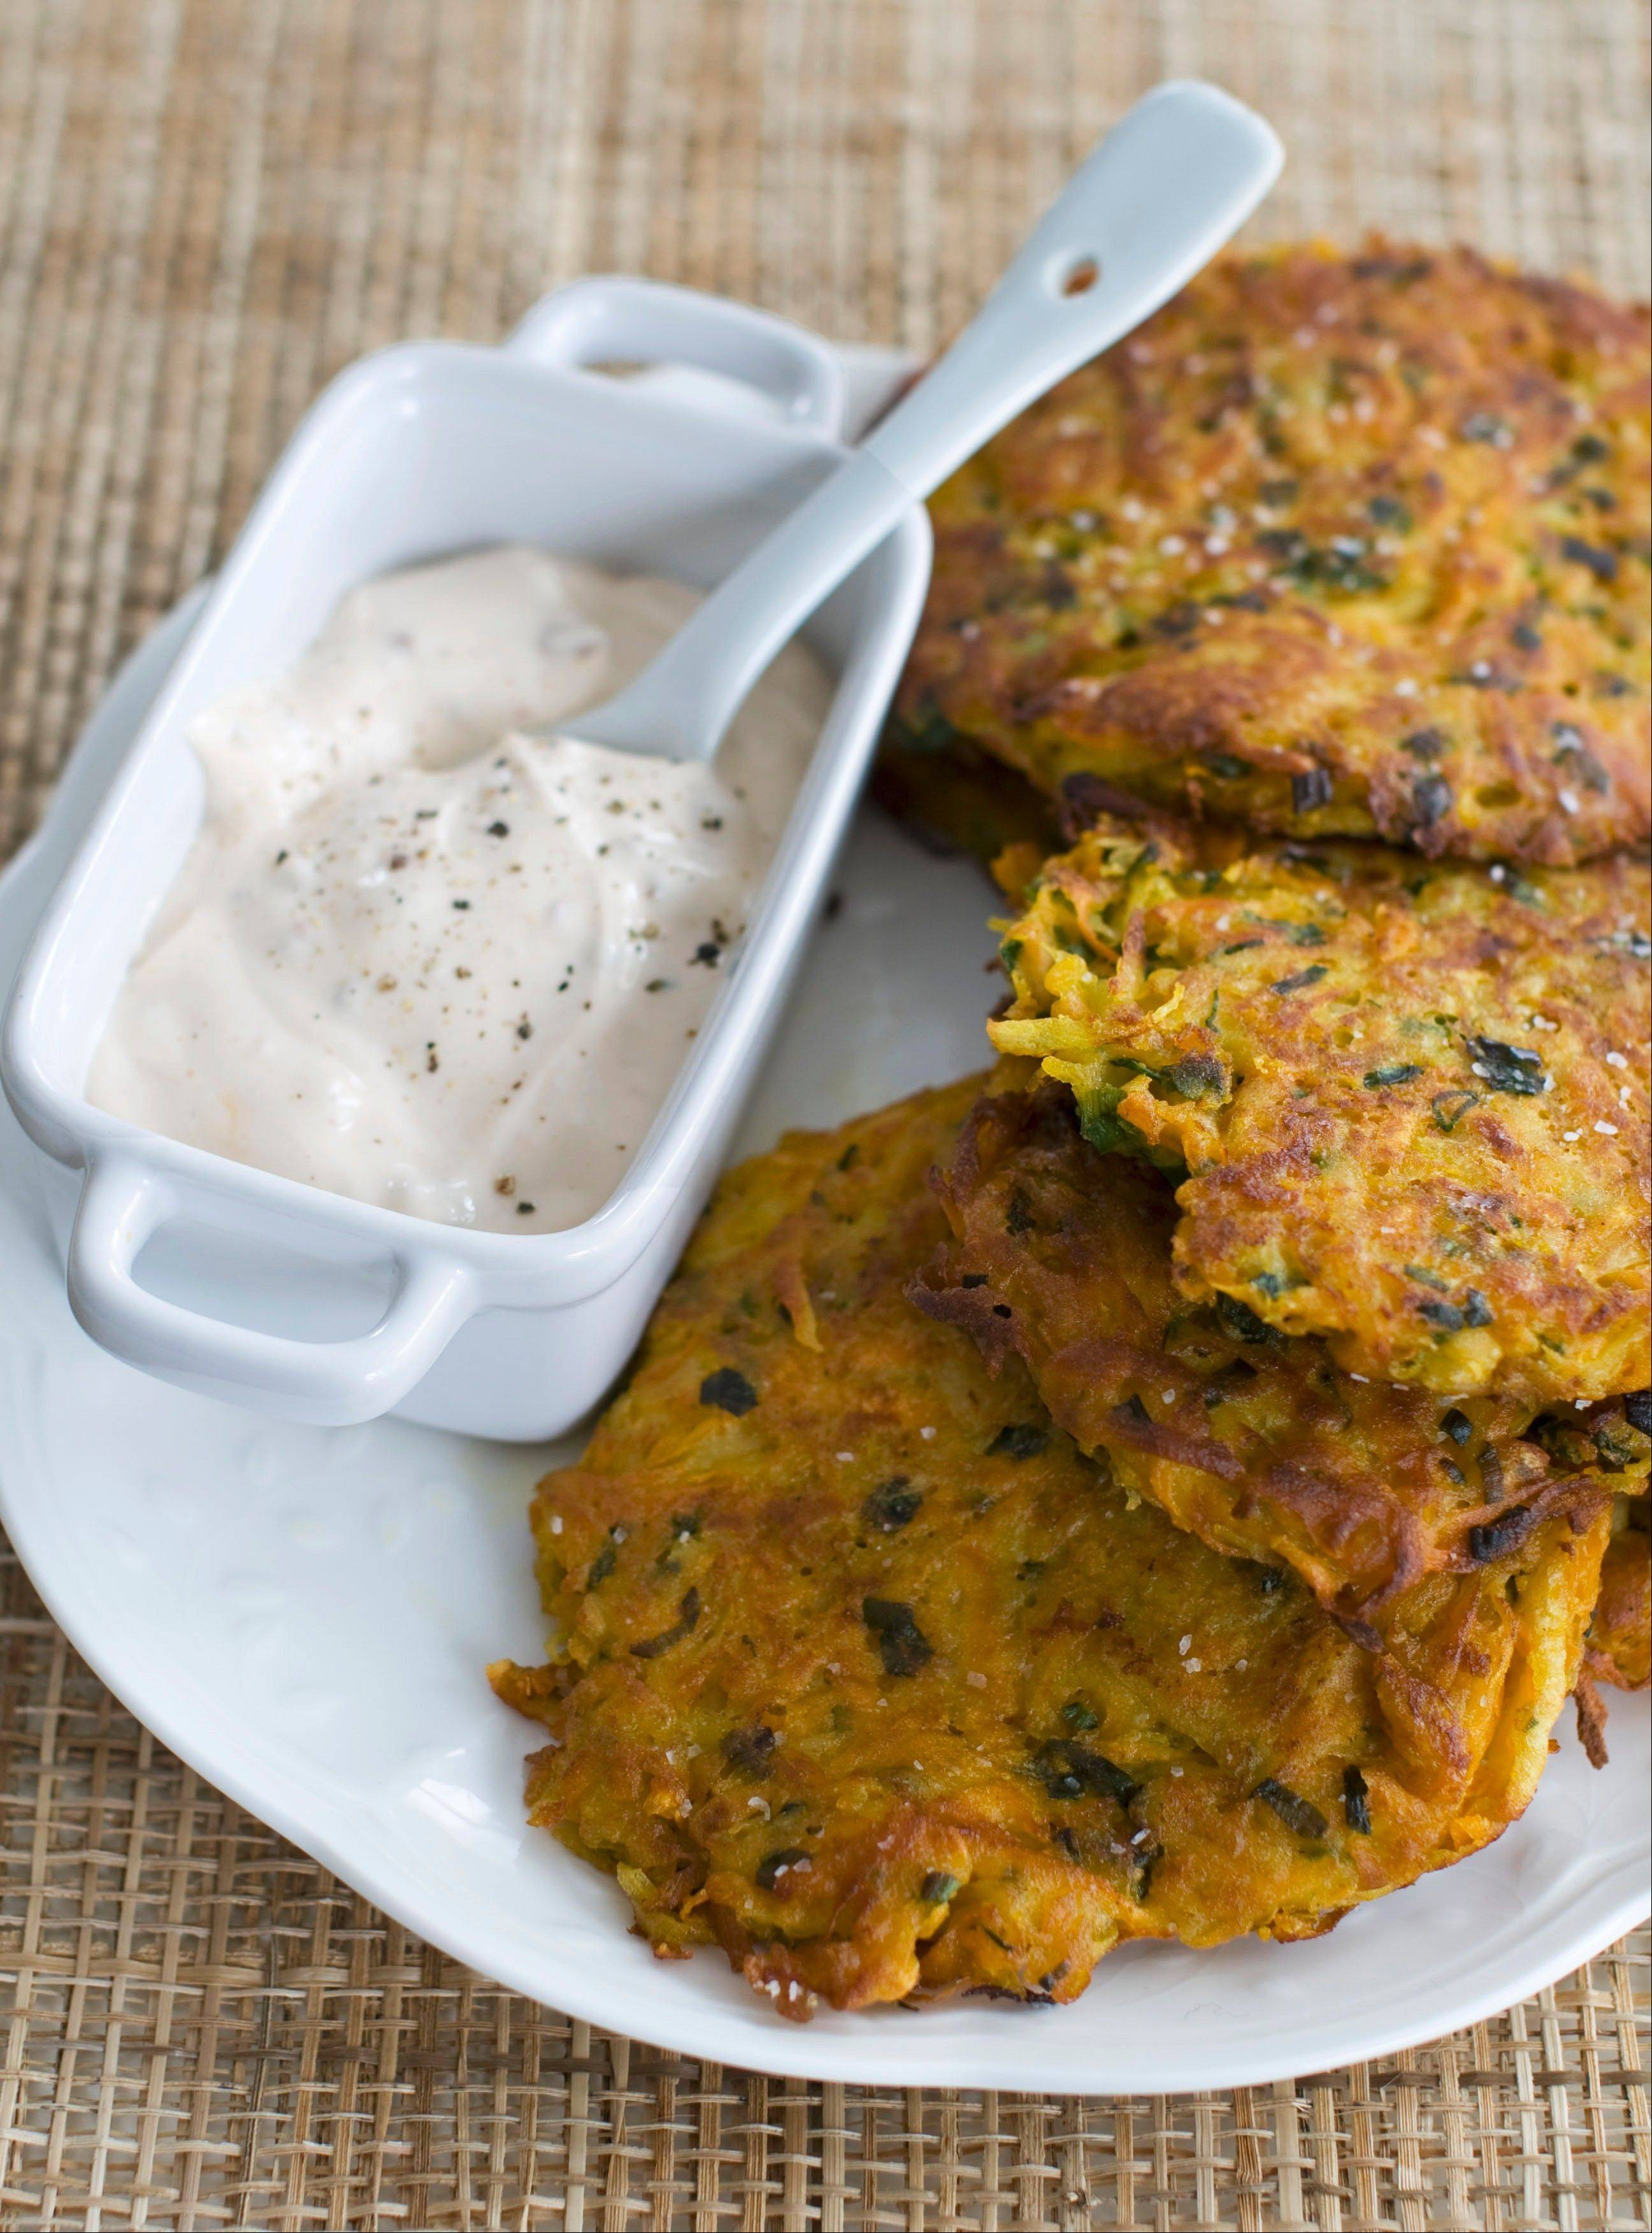 Sweet potatoes and Yukon gold go into Sara Mouton's Southwestern Latkes. She starts the potato patties in a fry pan and finishes them in the oven.